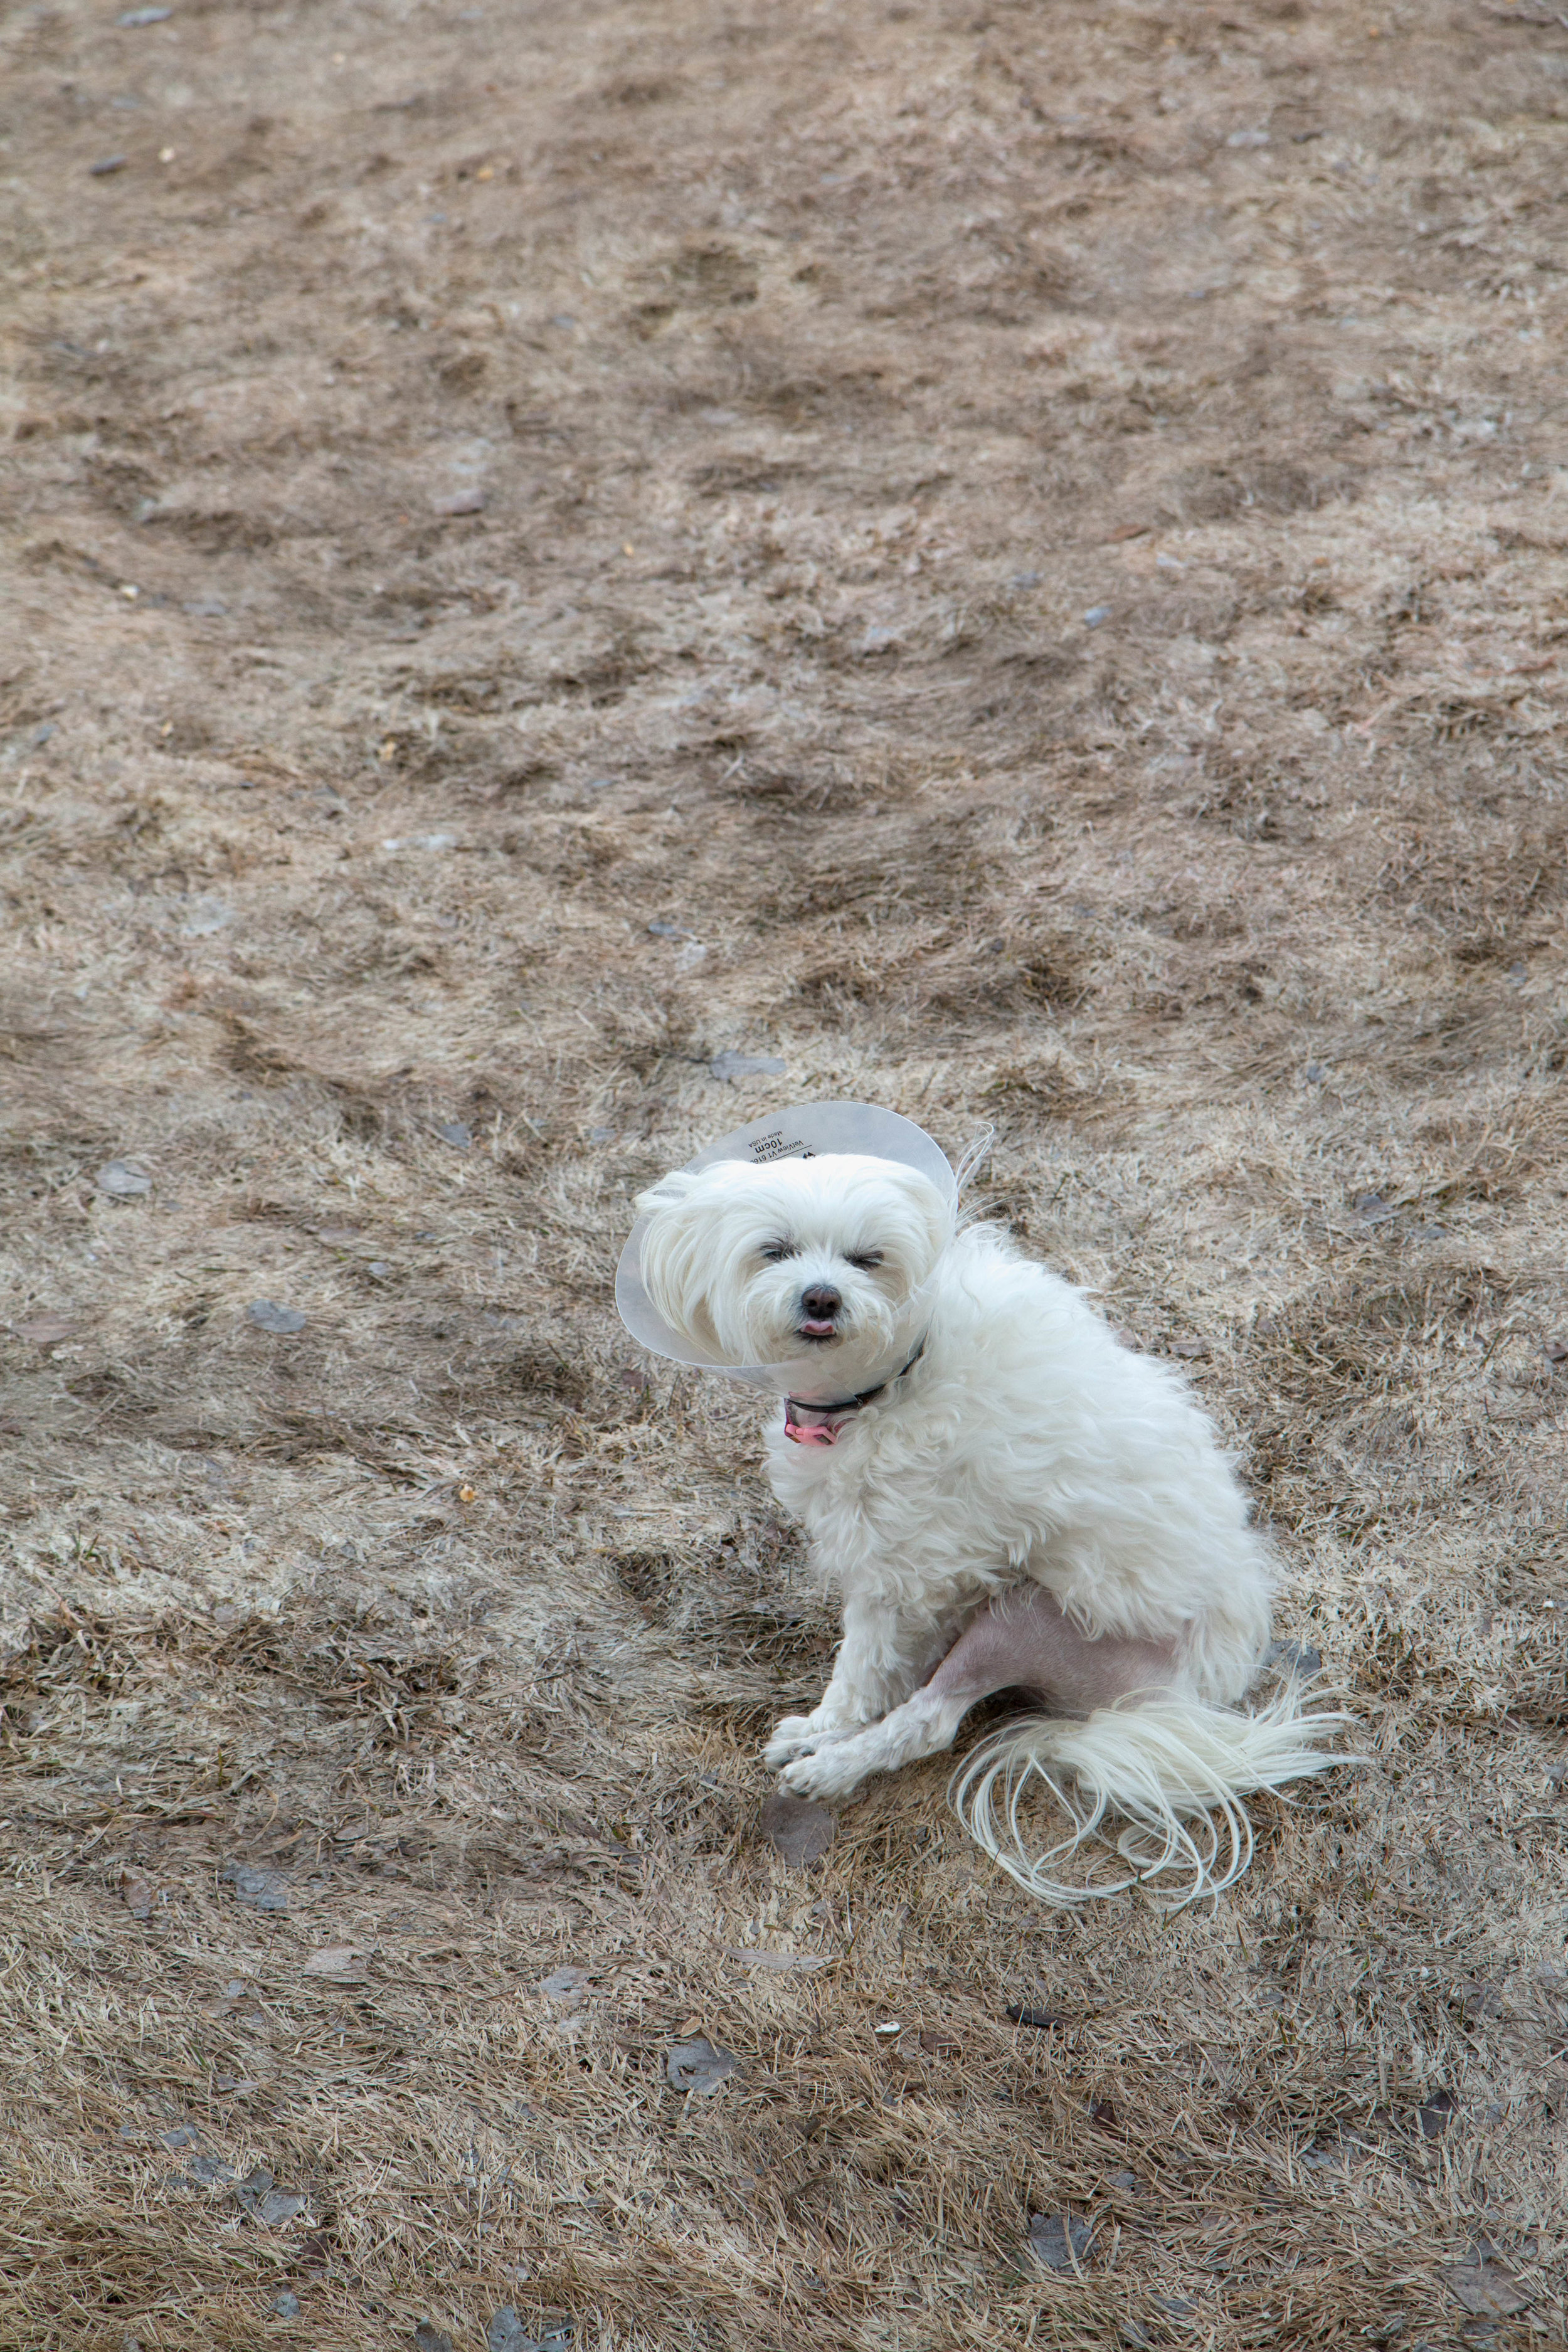 Adorable Maltese Sophi who recently had luxating patella surgery